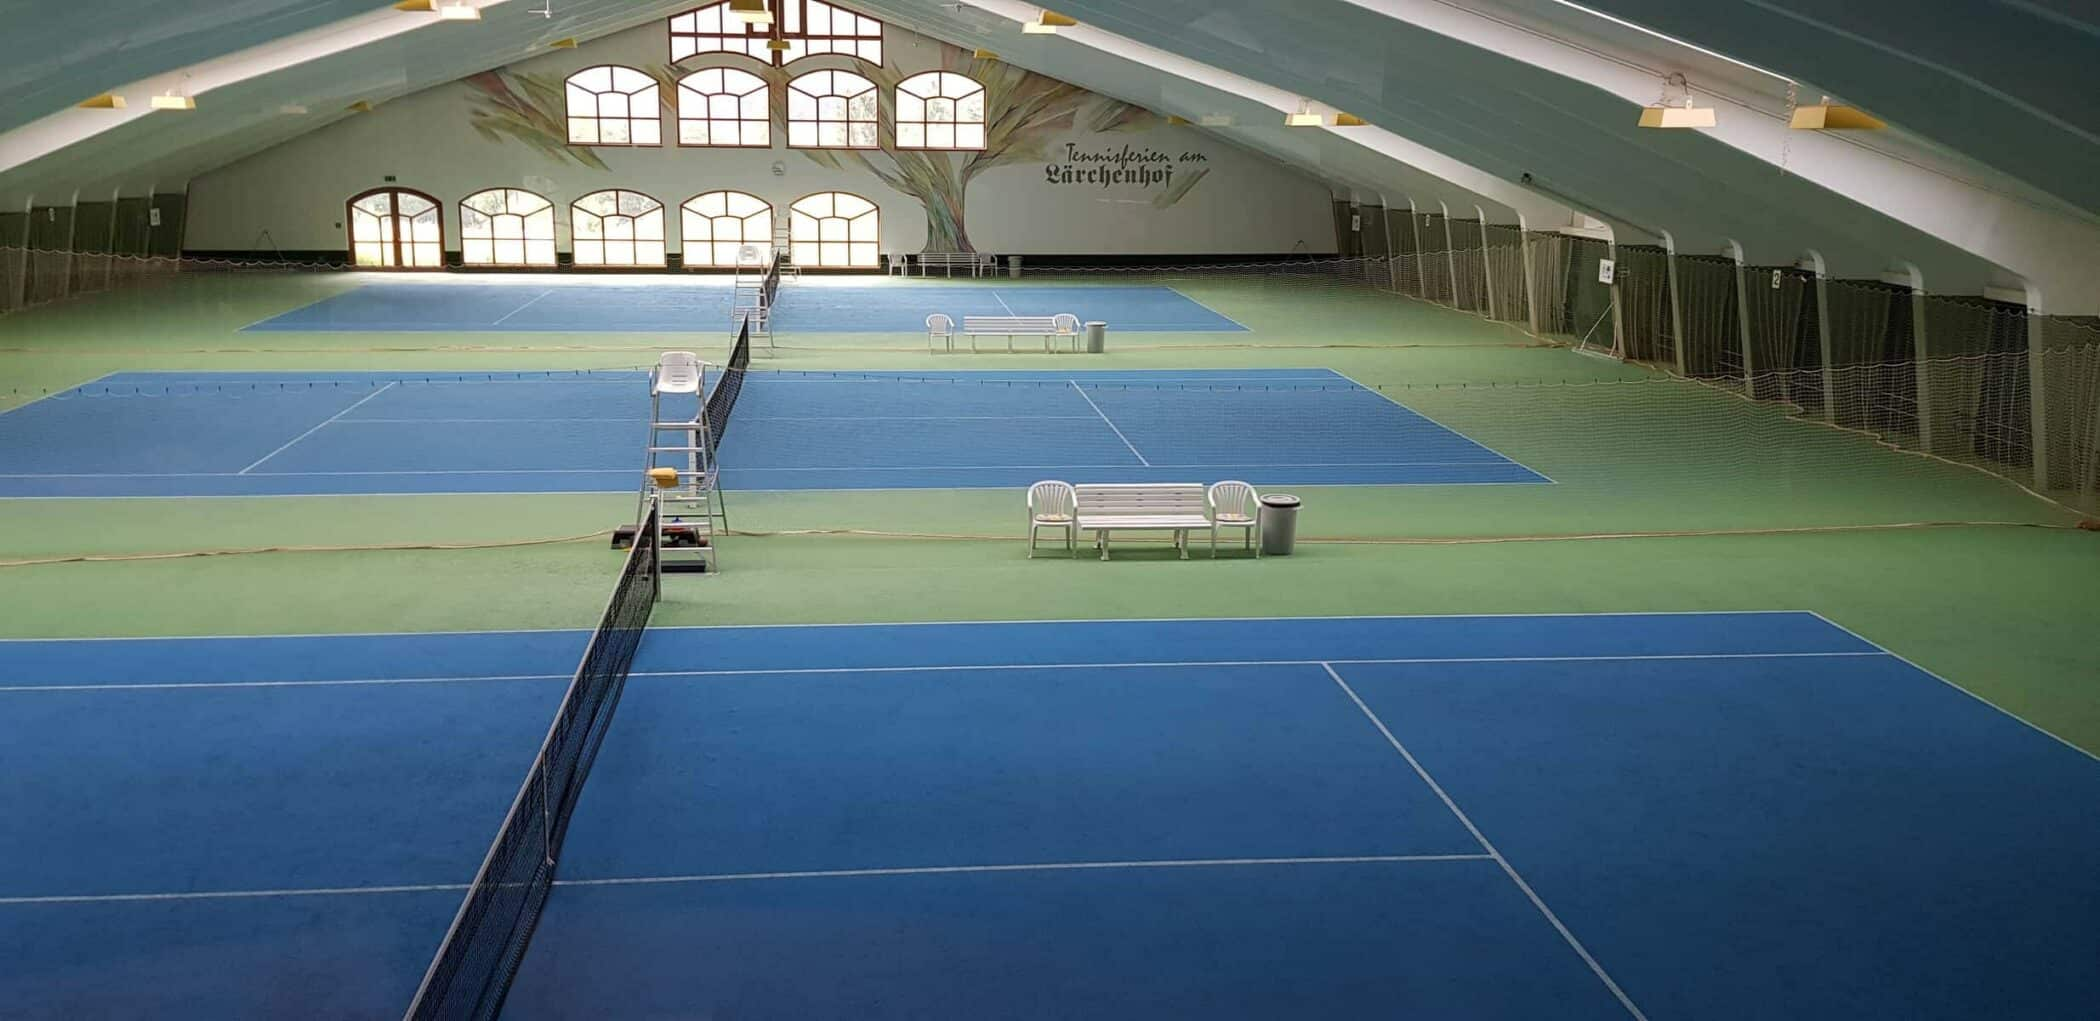 Laerchenhof indoor tennis